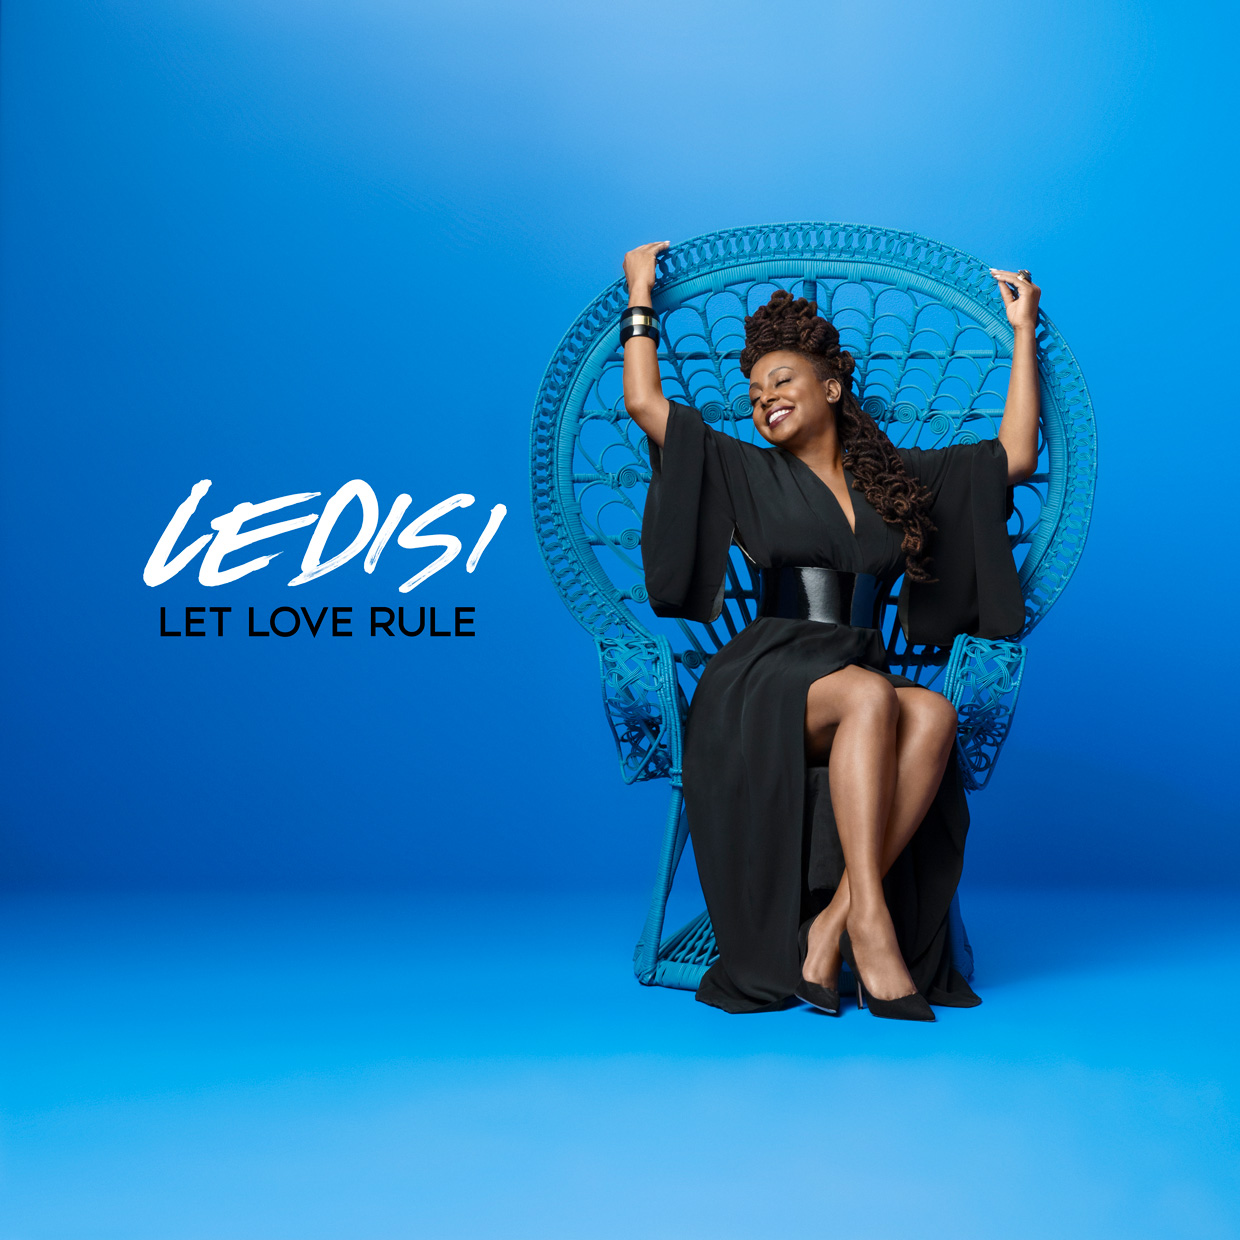 Ledisi-Let-Love-Rule-albun-art-2017-billboard-1240.jpg